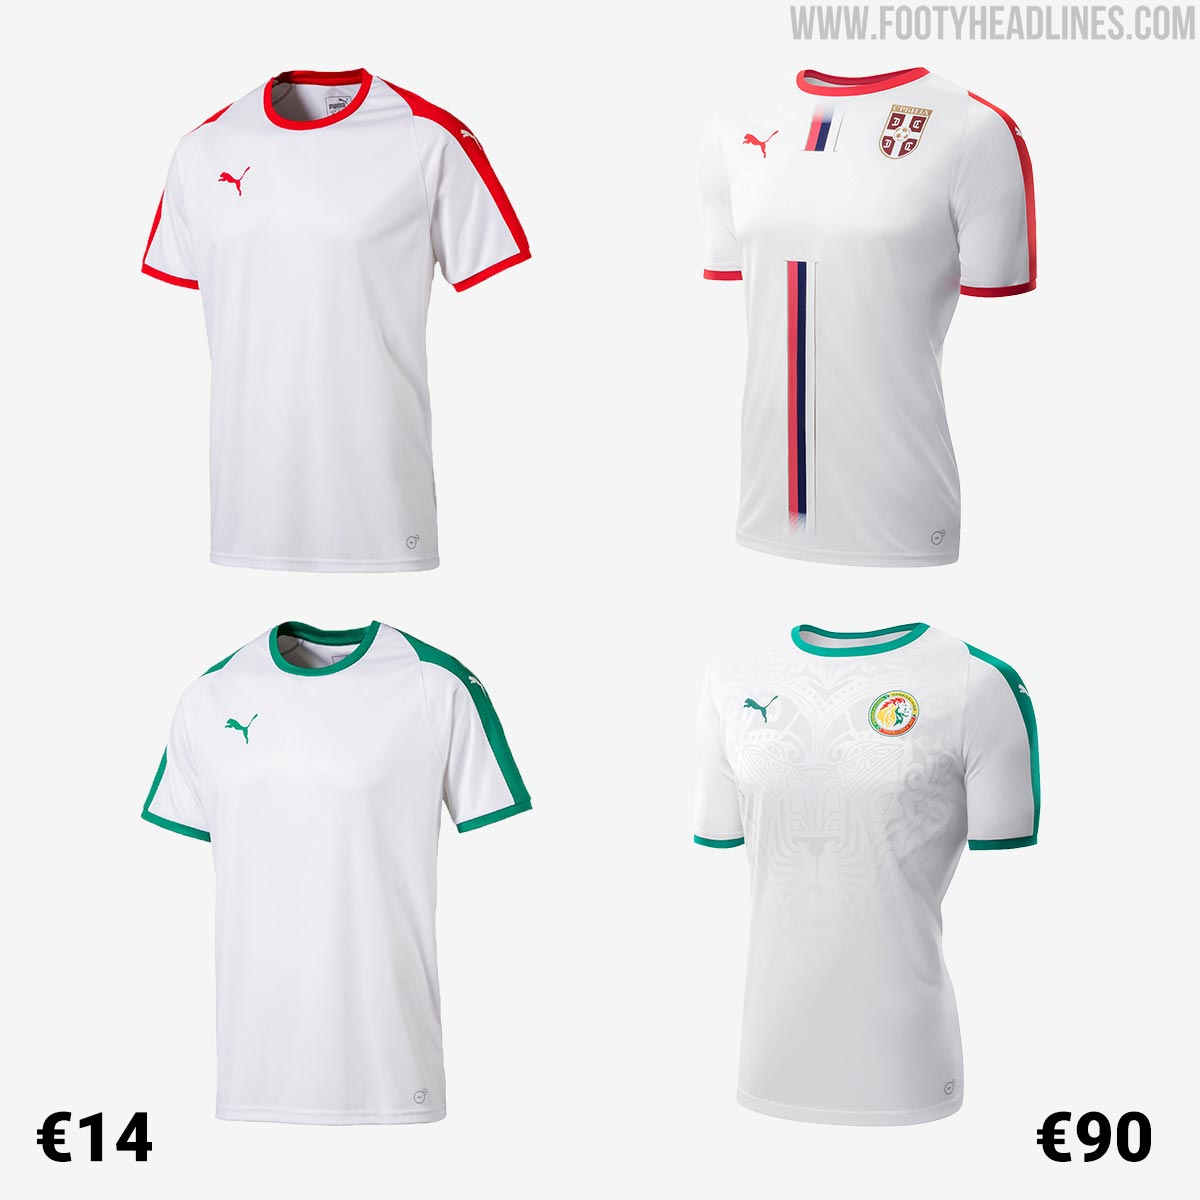 shock serbia and senegal 2018 world cup jerseys are